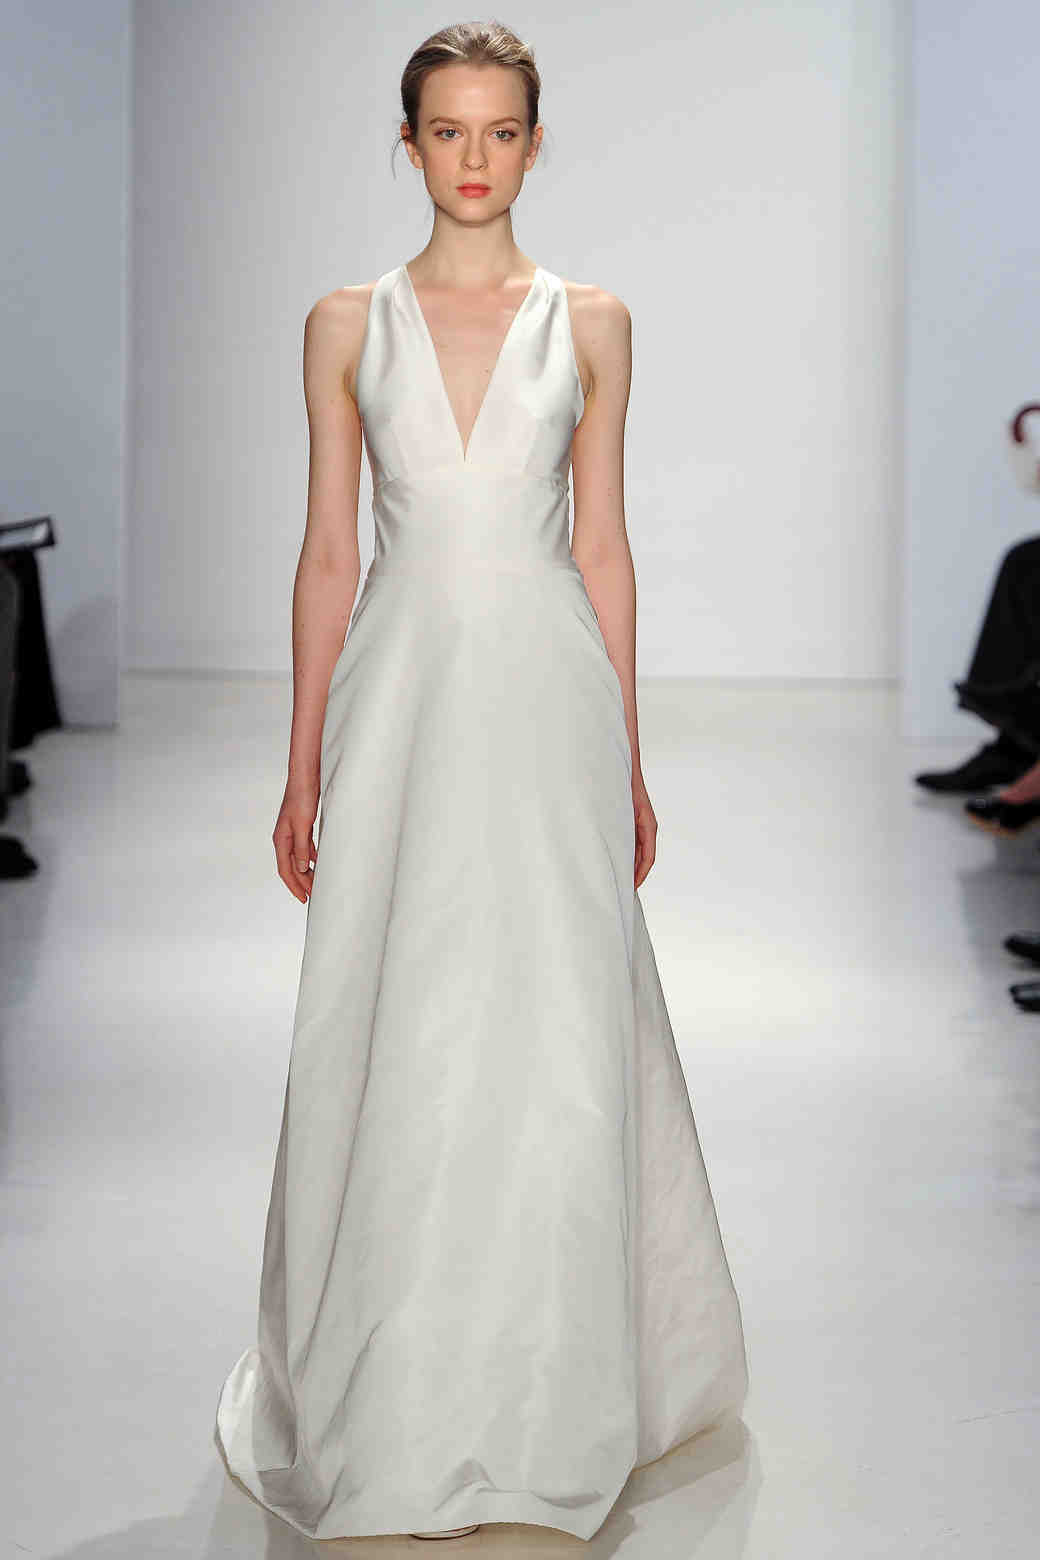 50 Wedding Dresses for Every Bride\'s State Pride | Martha Stewart ...